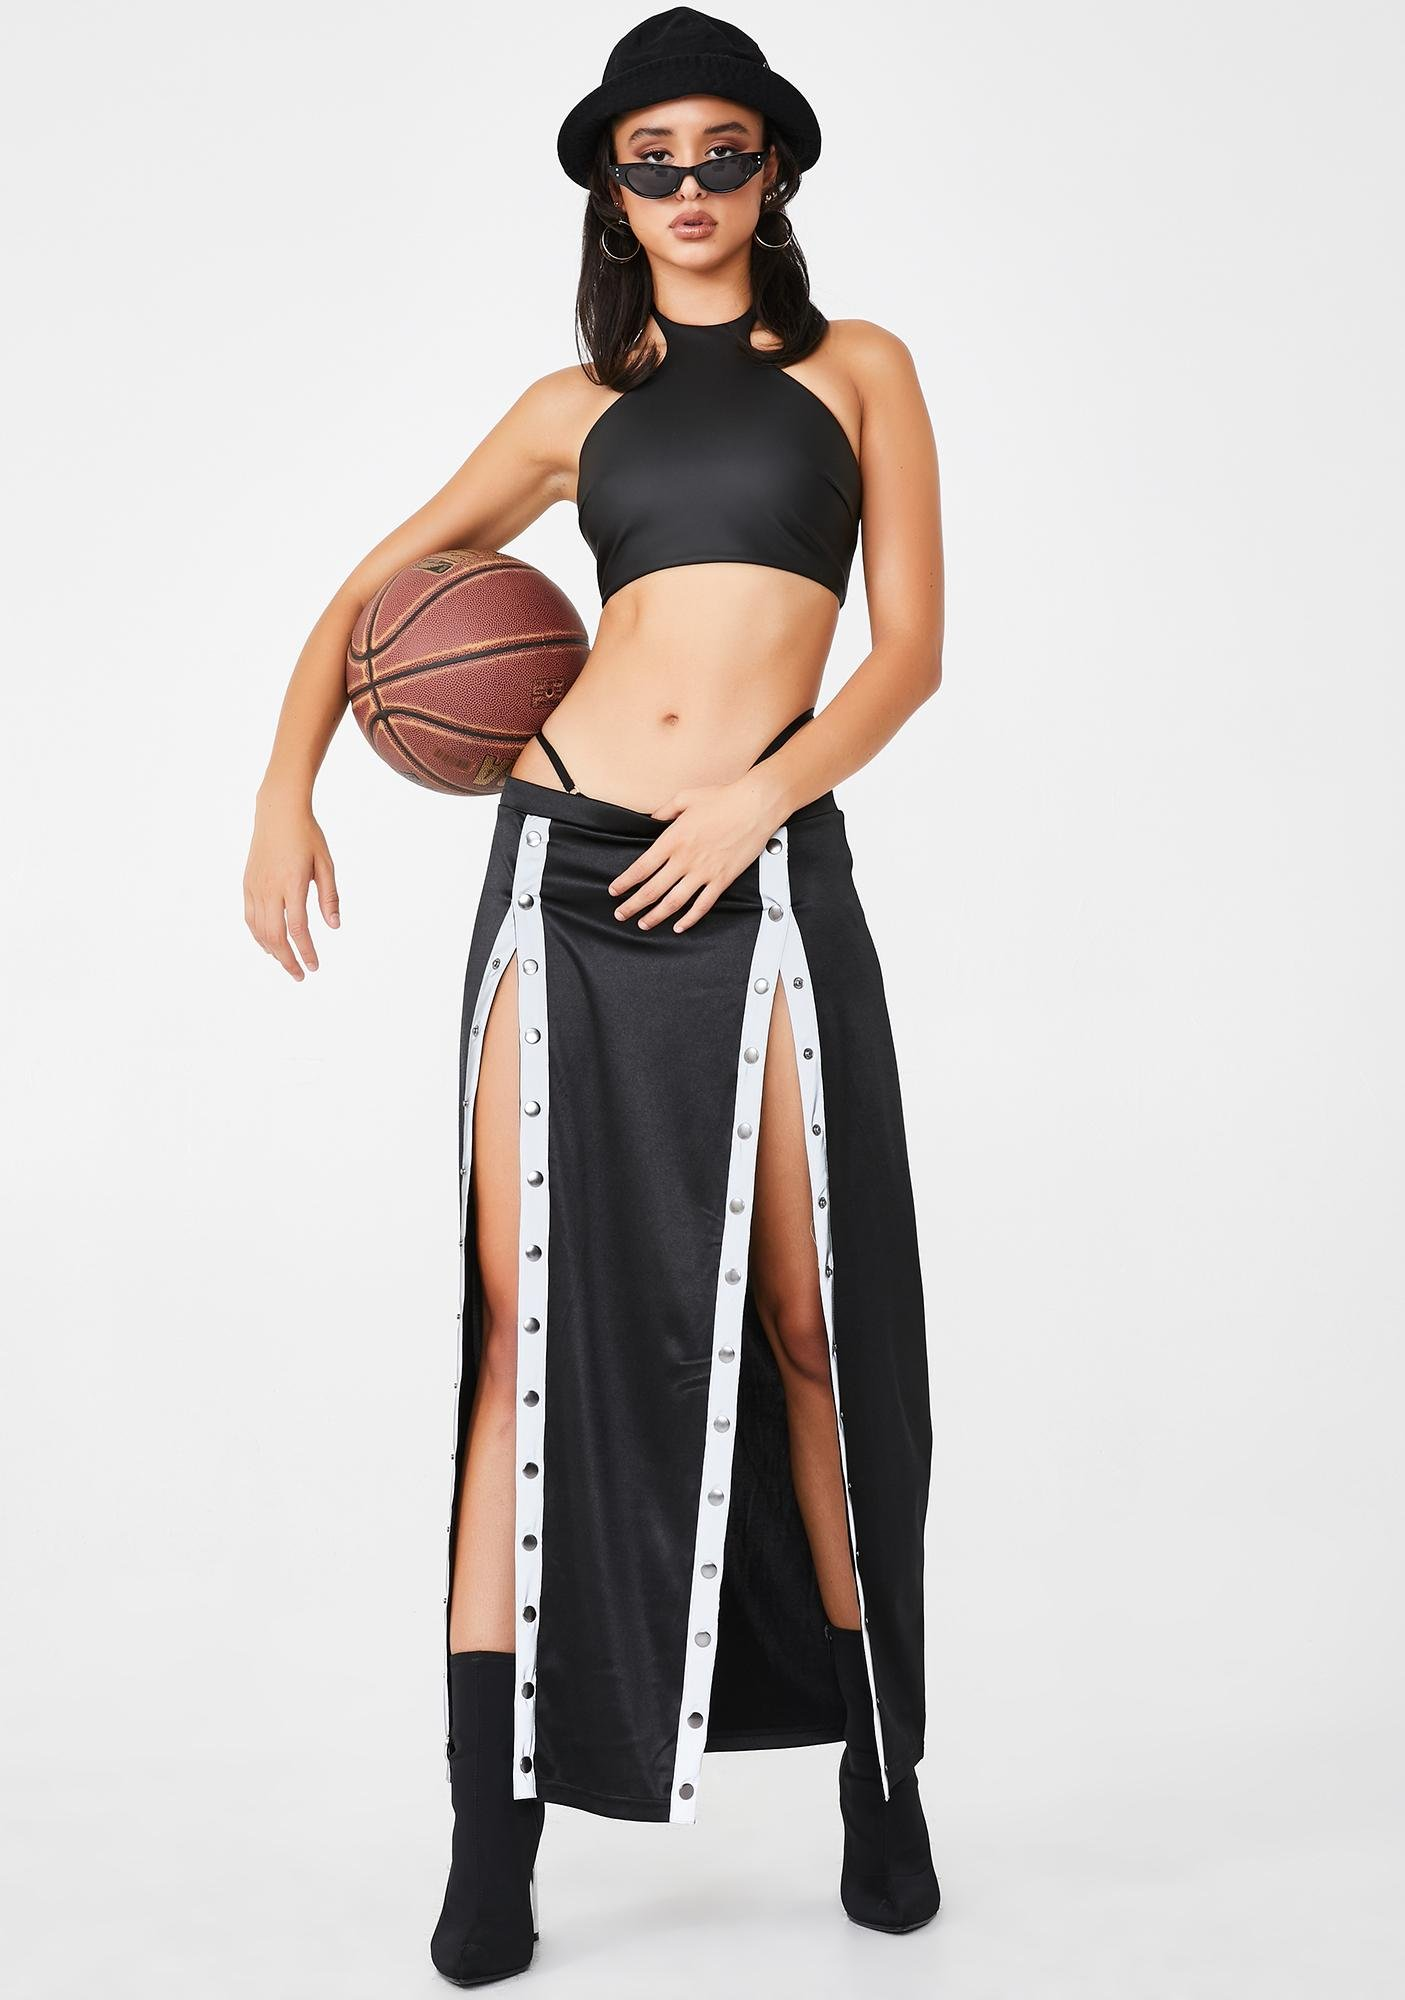 Poster Grl Hard To Ignore Tearaway Skirt